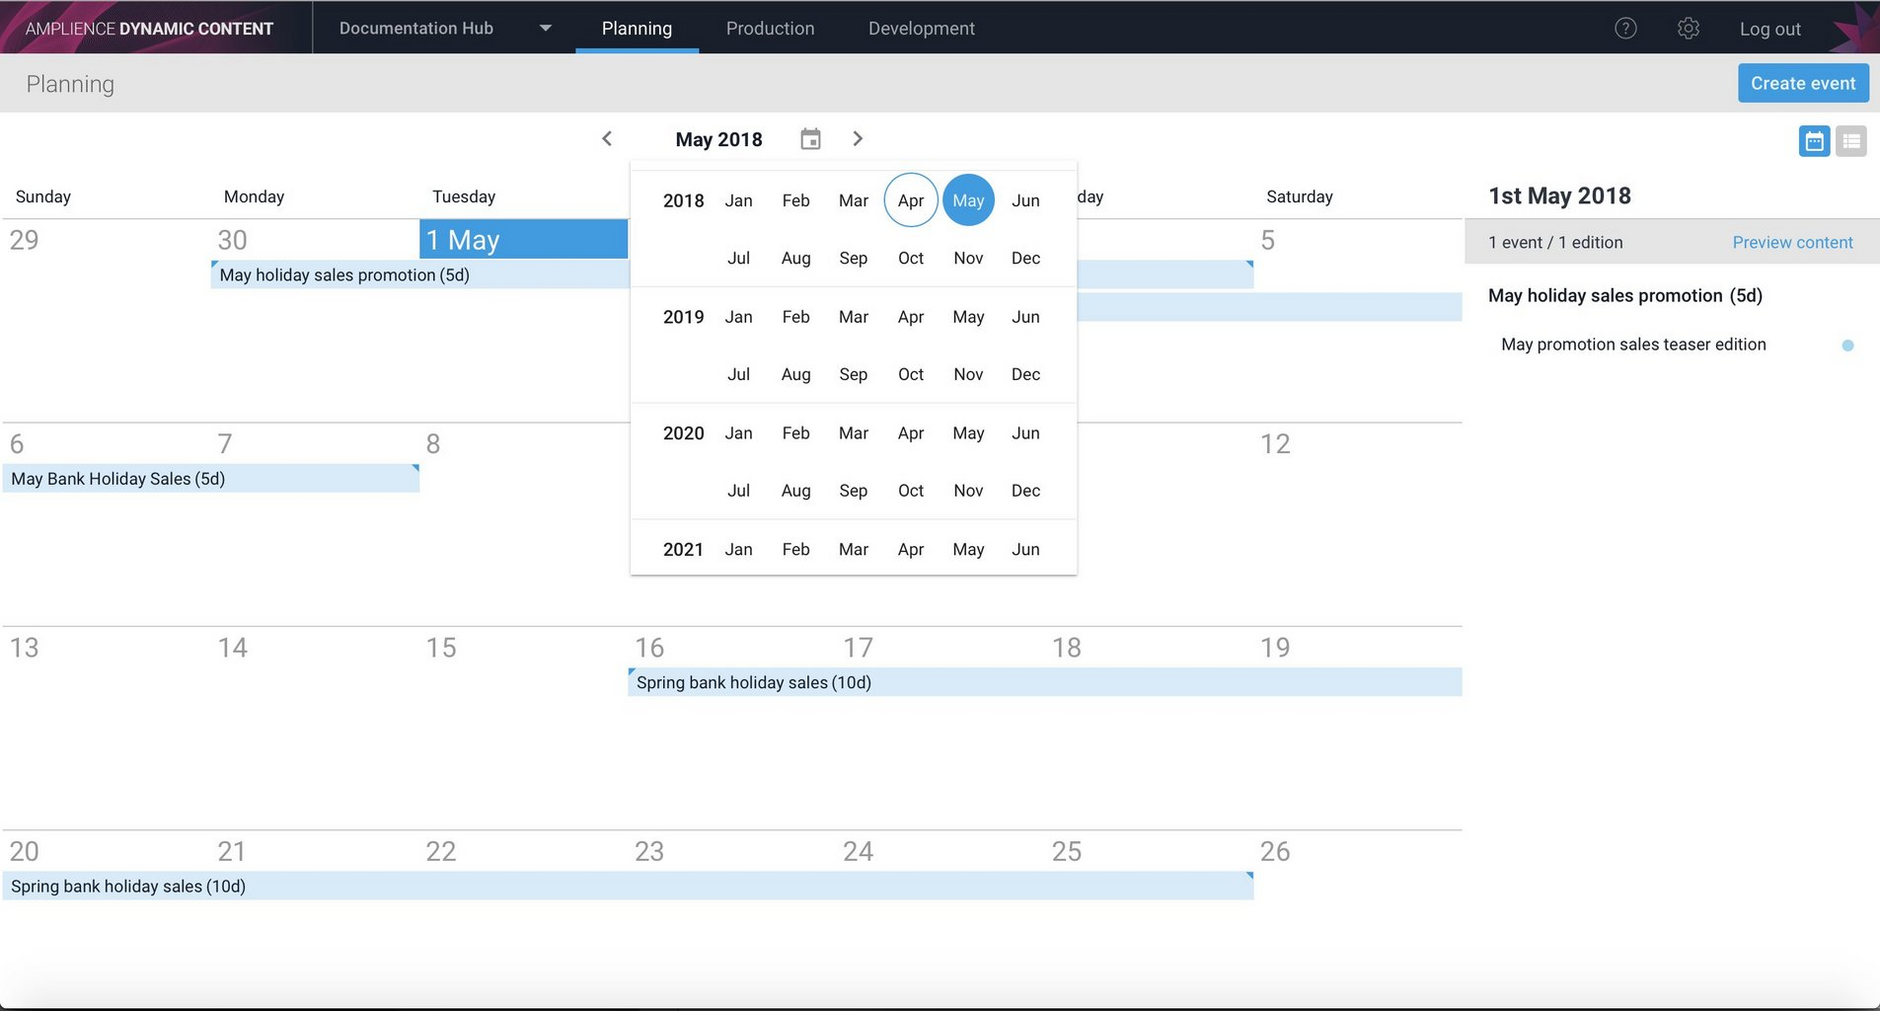 Date selection in the planning view